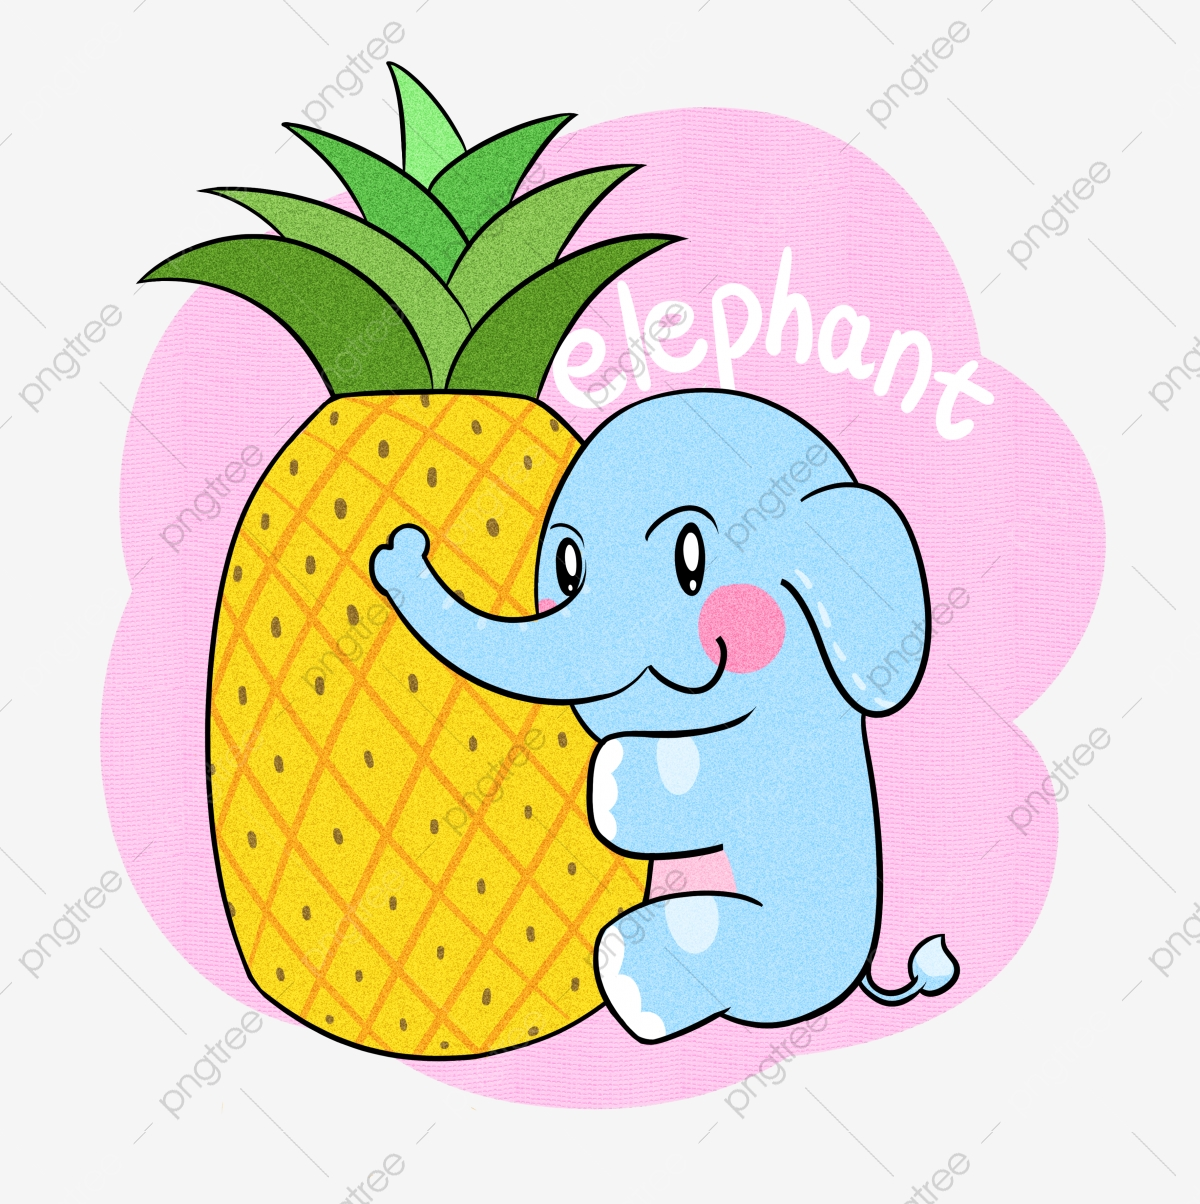 Elephant Pineapple Animal Cartoon Lovely Hand Drawn Cartoon Hand Painted Png Transparent Clipart Image And Psd File For Free Download It is a free clip art image of a elephant cartoon character eating a banana. https pngtree com freepng elephant pineapple animal cartoon 3961891 html